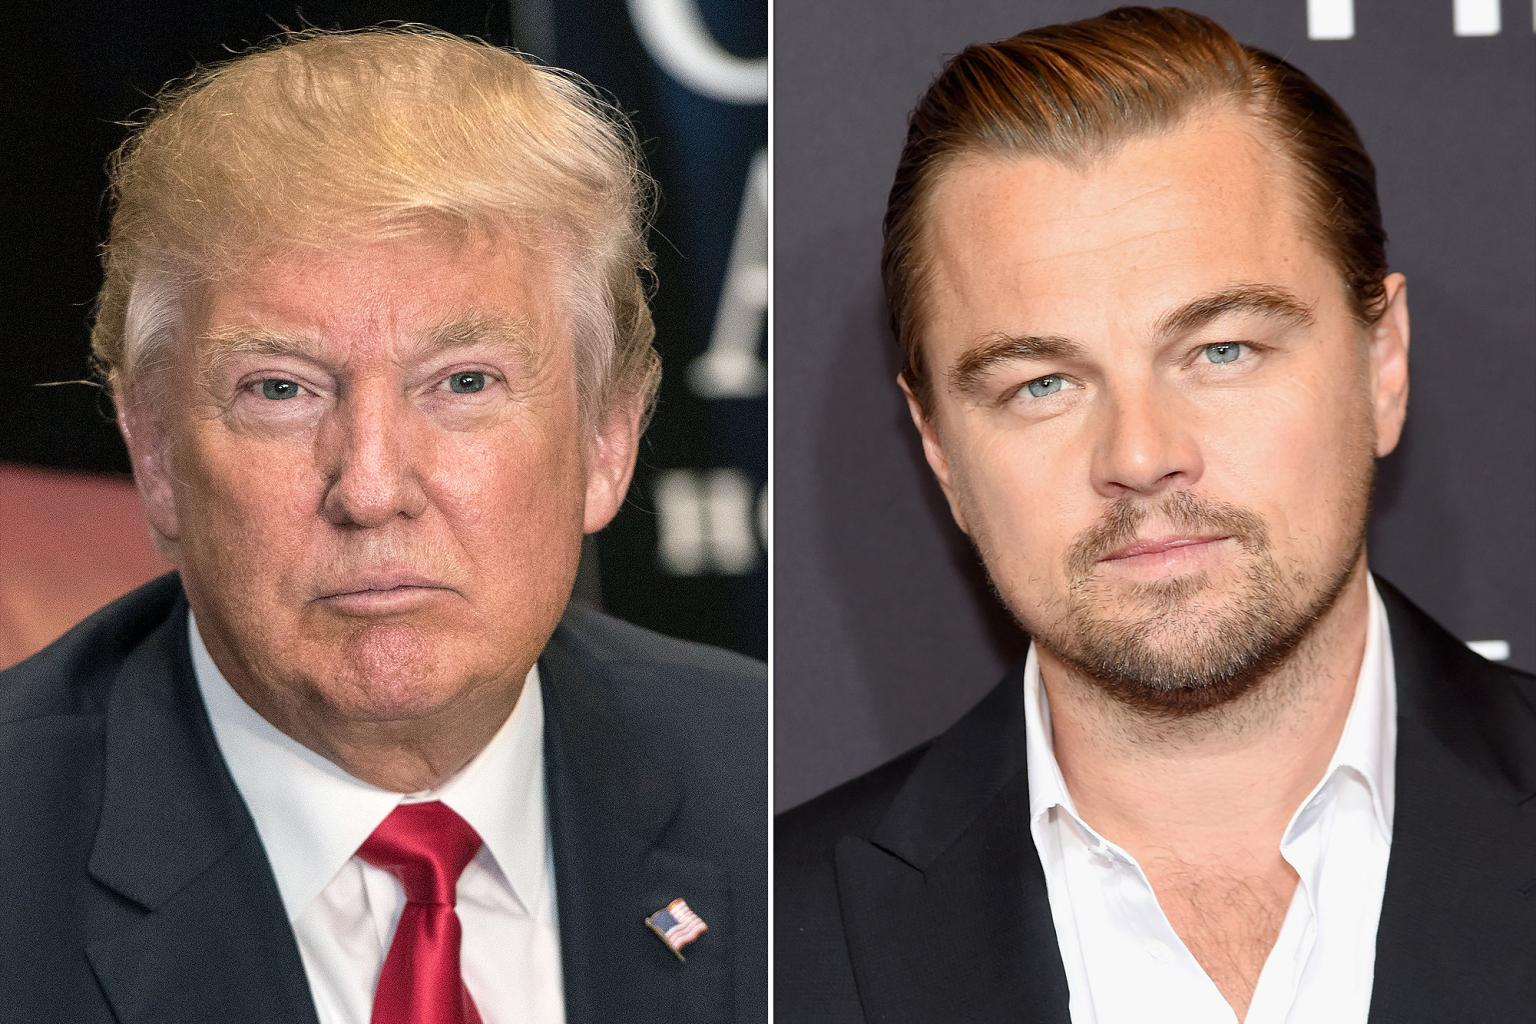 Leonardo DiCaprio Meets with Donald Trump to Discuss Environmental Job Opportunities